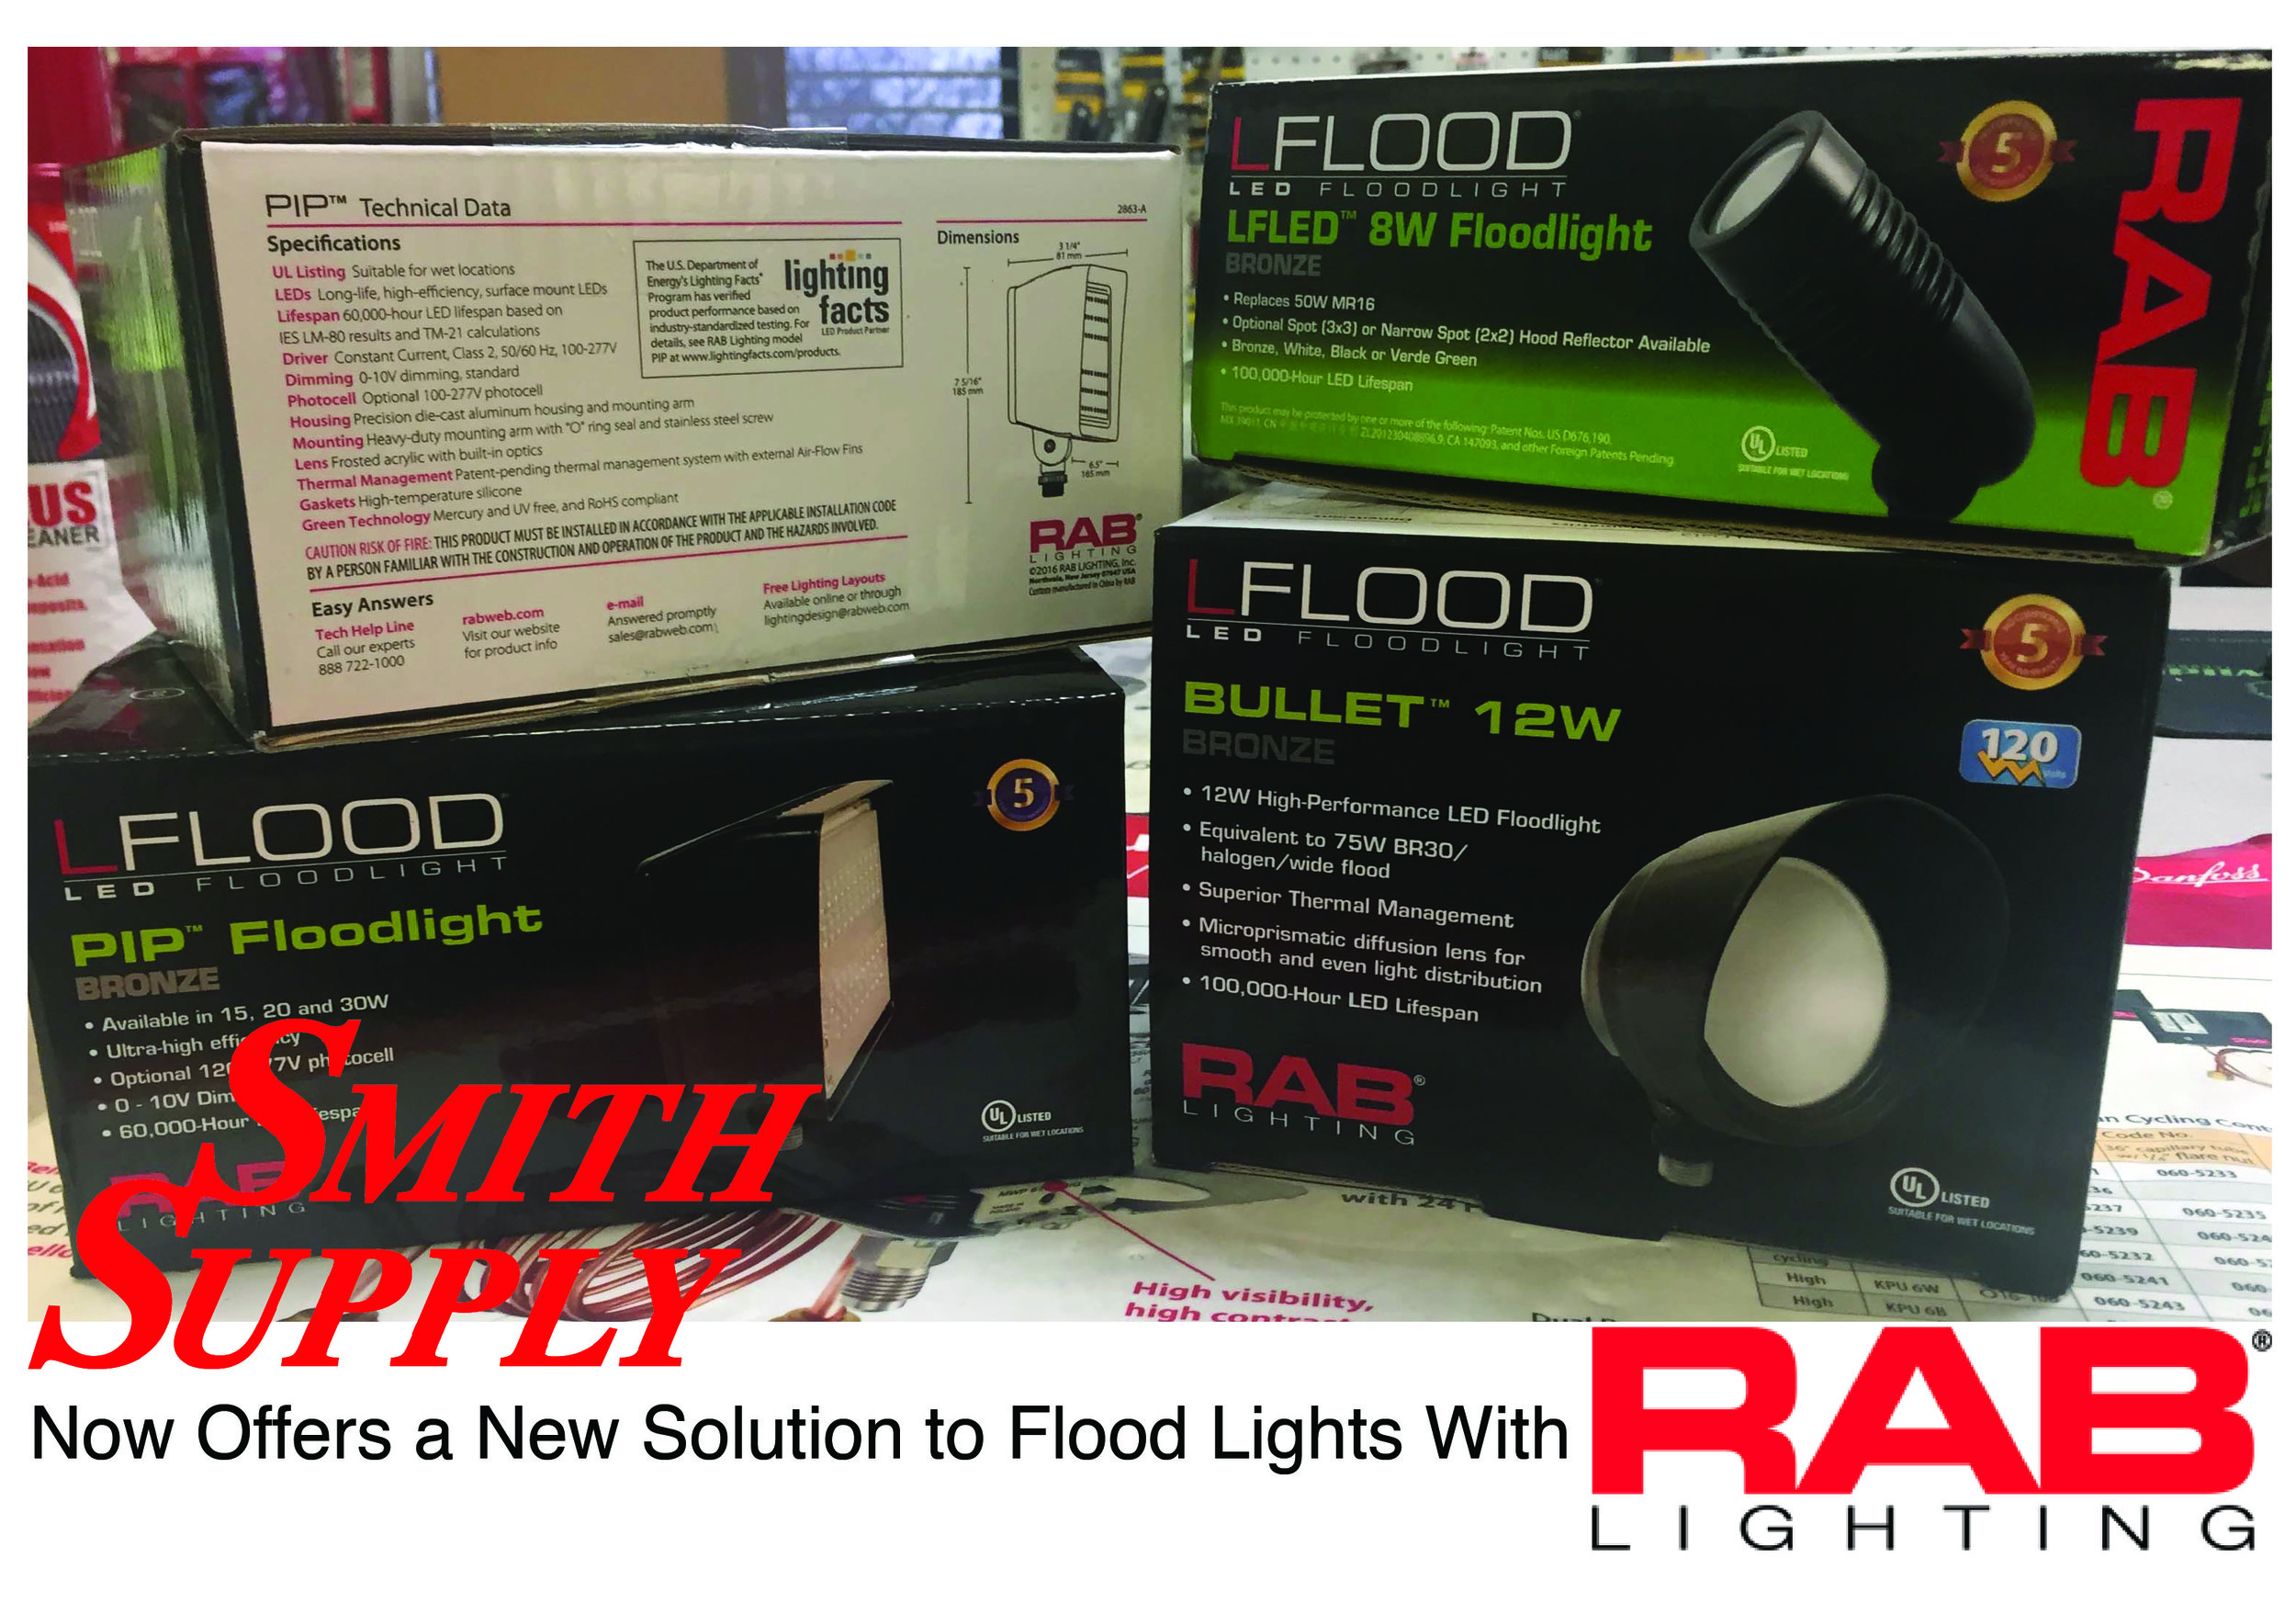 Smith Supply knows that LEDs are the best way to go. We now offer the RAB LFlood lights to light up your business or home. Stop in and talk to a salesperson to get your flood lights up to date.